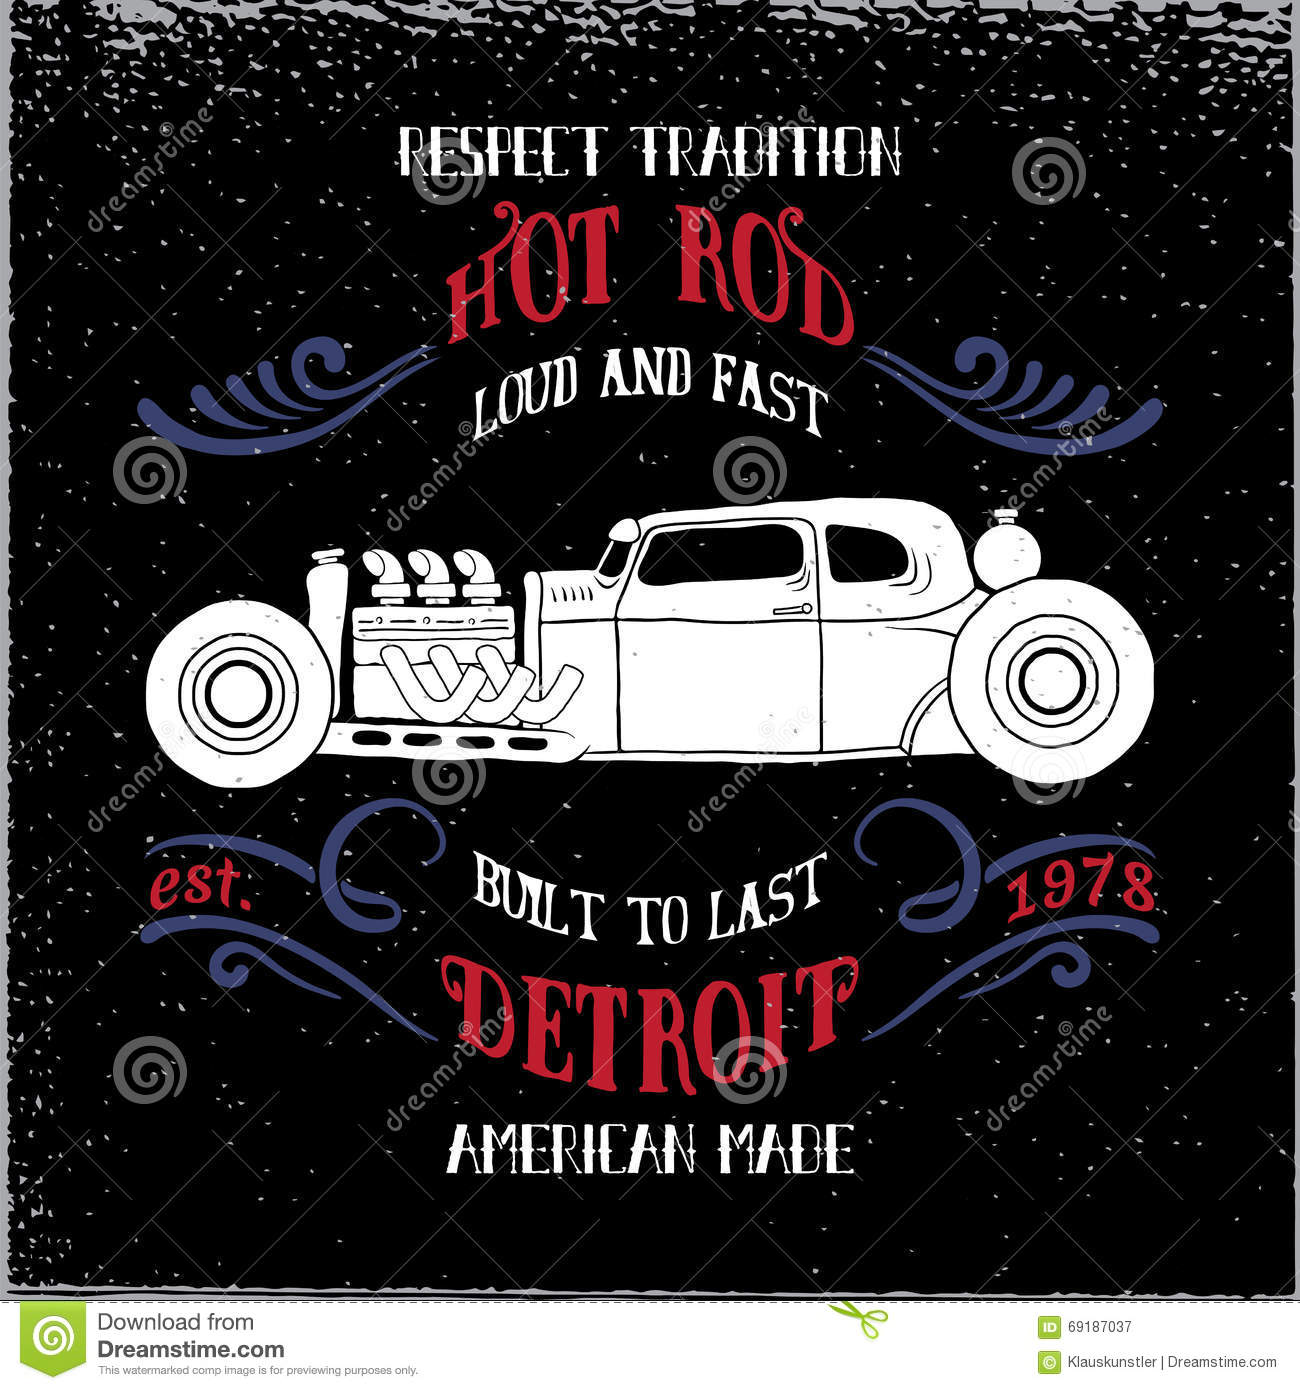 46631a81 Hot rod vehicle design and decoration elements.Typography t-shirt design  for apparel. Designers Also Selected These Stock Illustrations. Vector ...